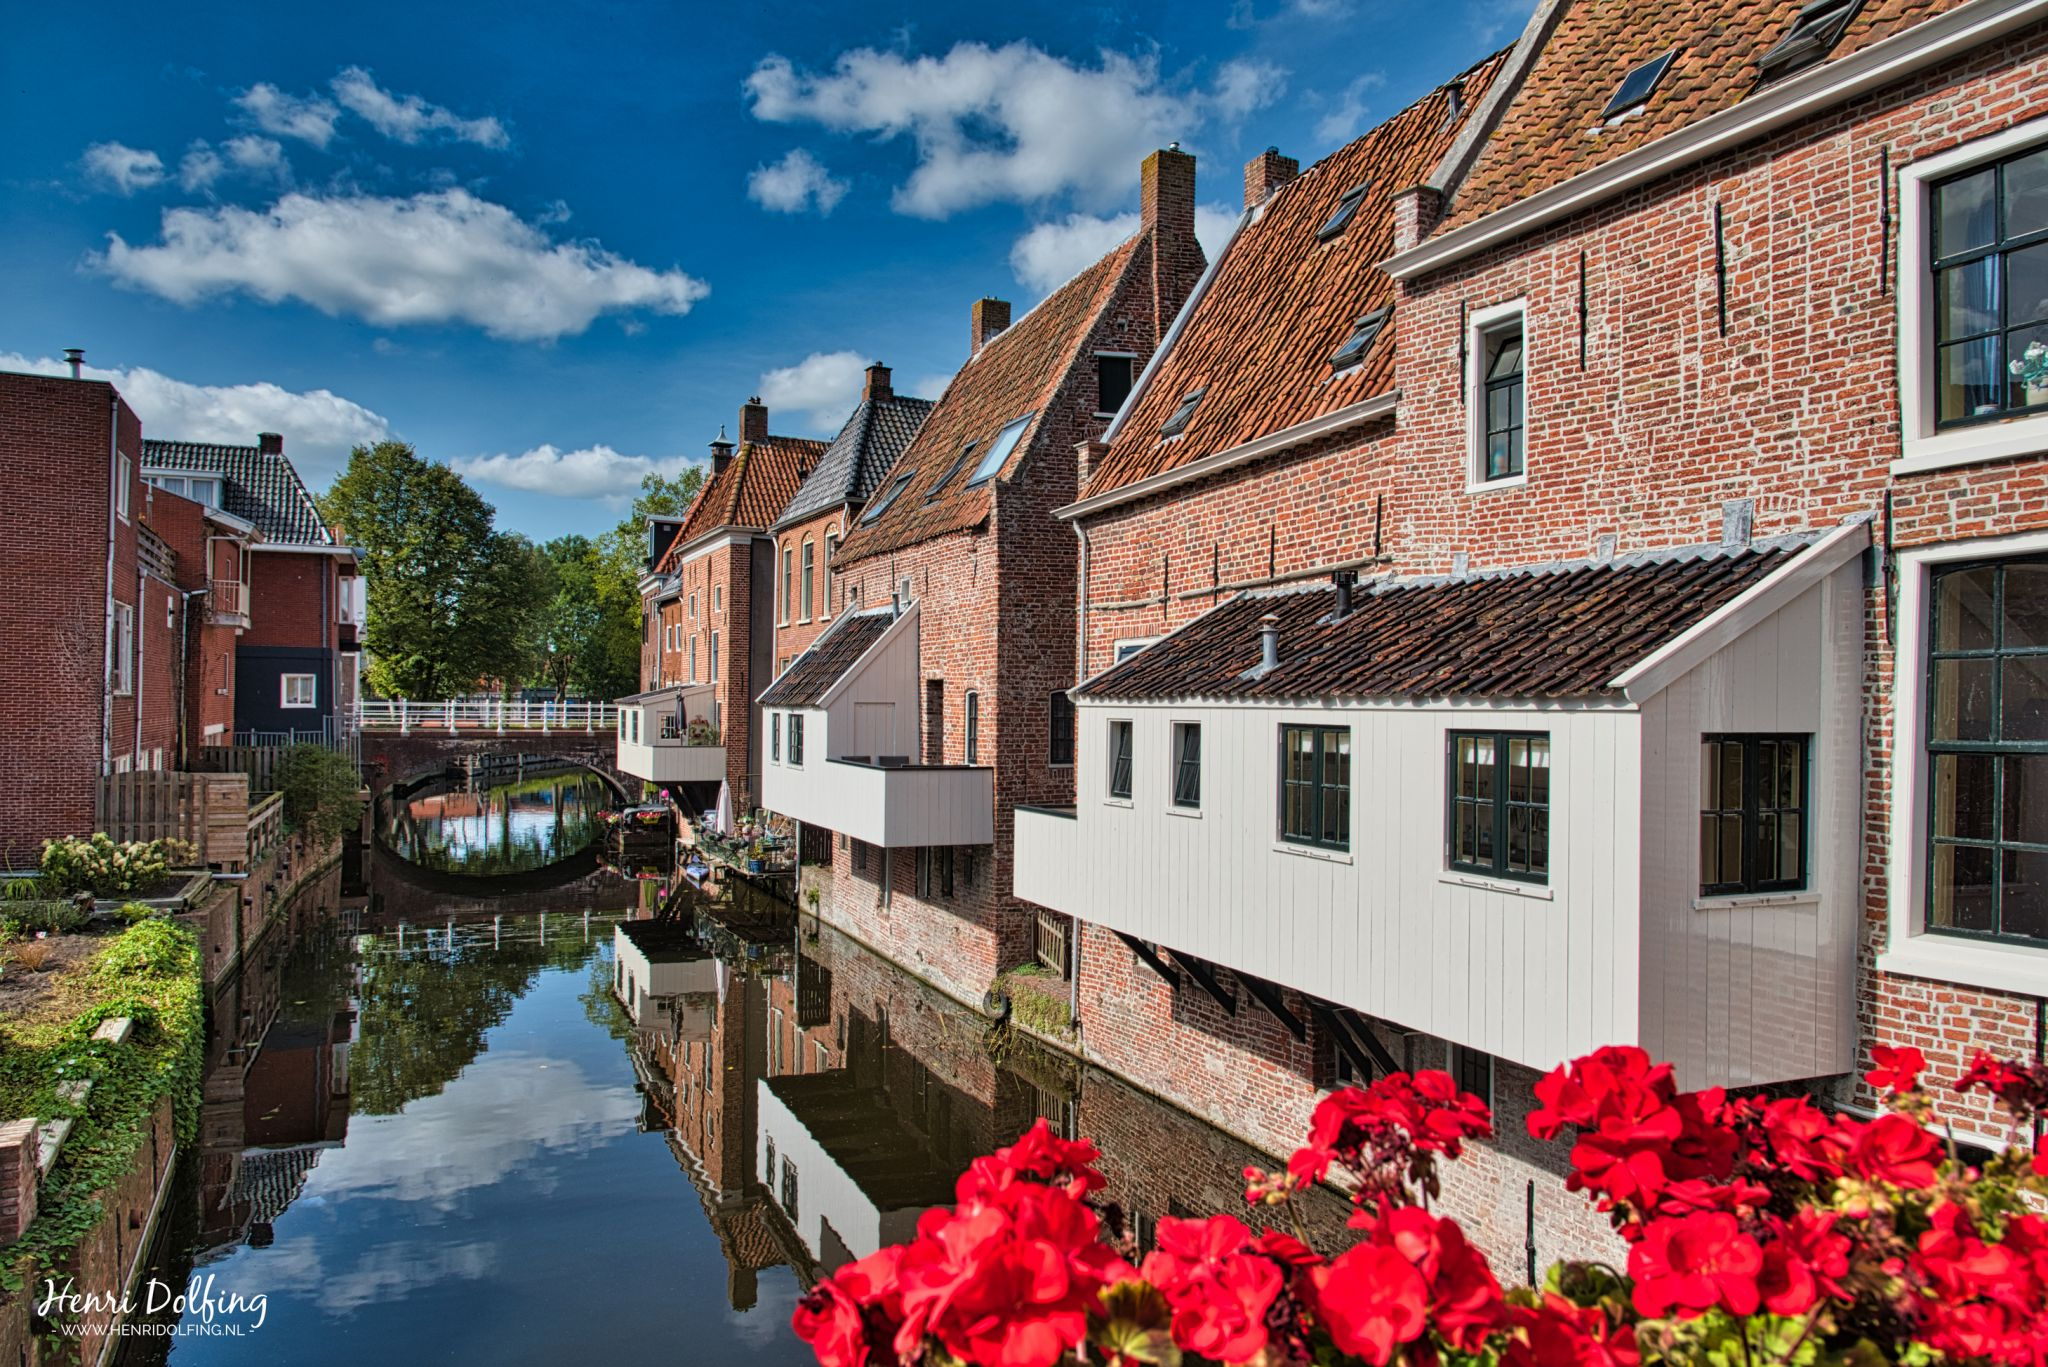 Hanging kitchens above Damsterdiep in city of Appingedam, Netherlands